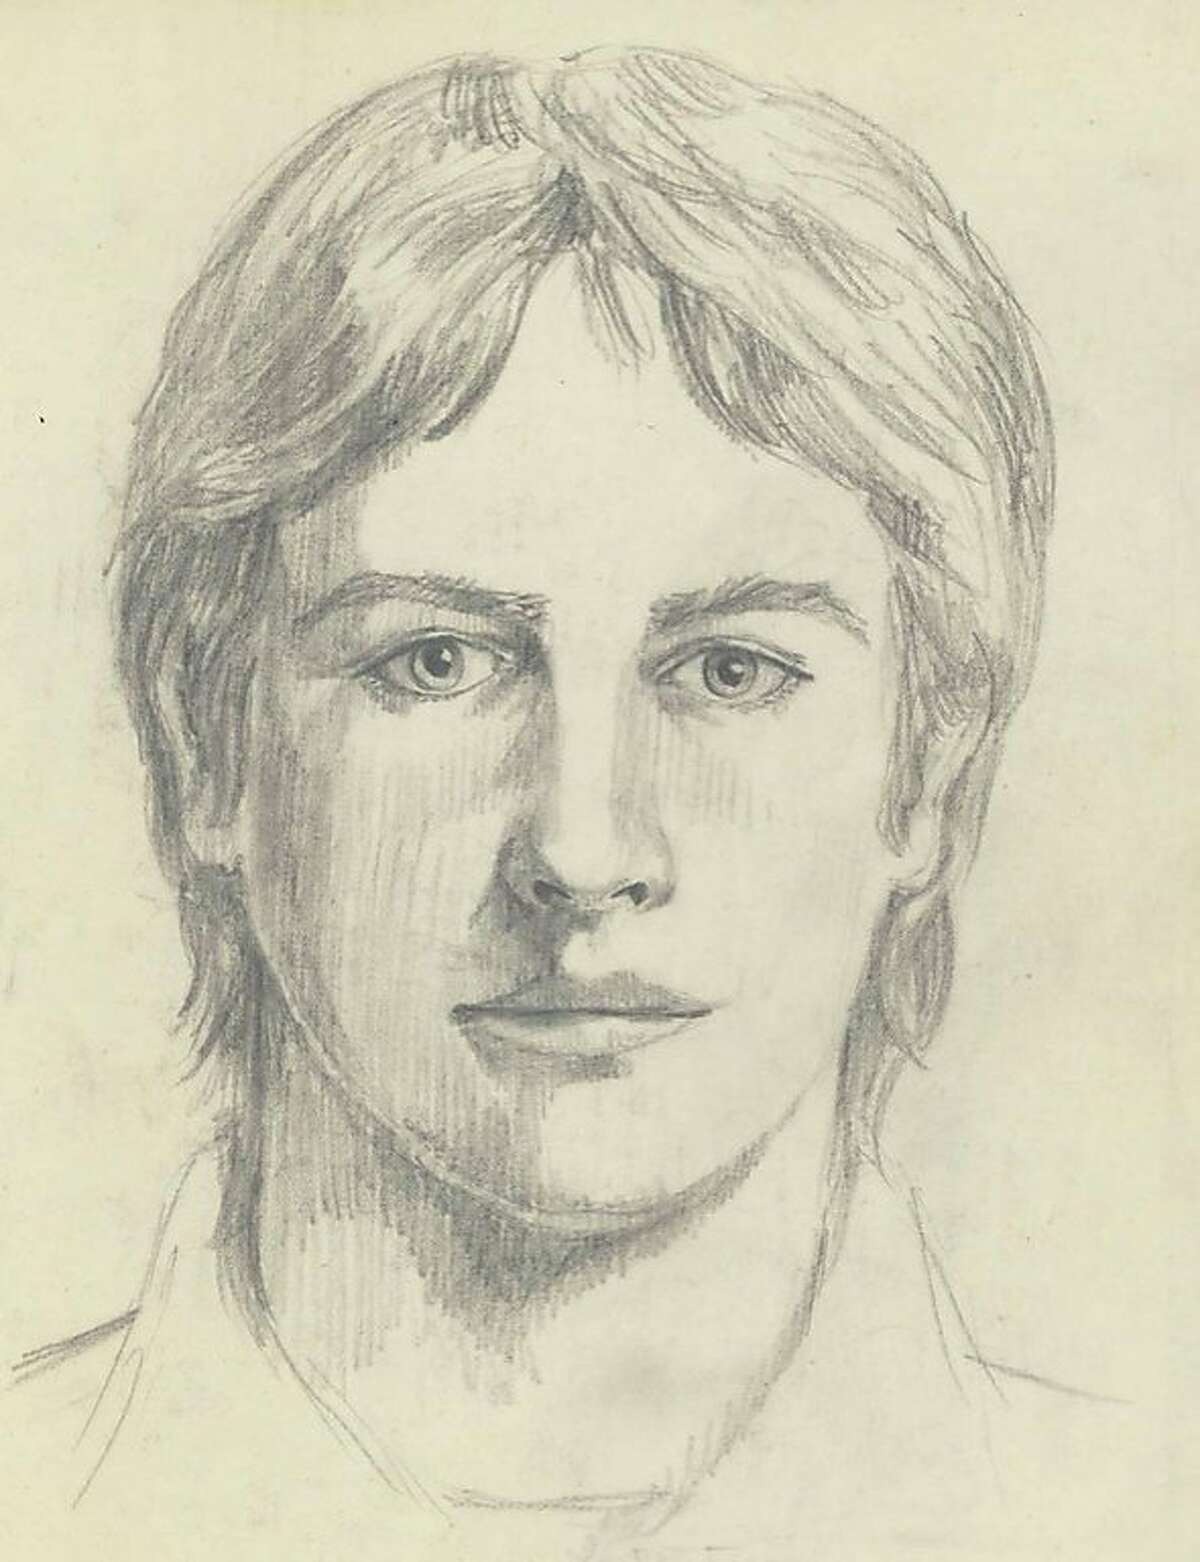 East Area Rapist During the period of 1976 to 1979, a serial rapist and murderer known as the